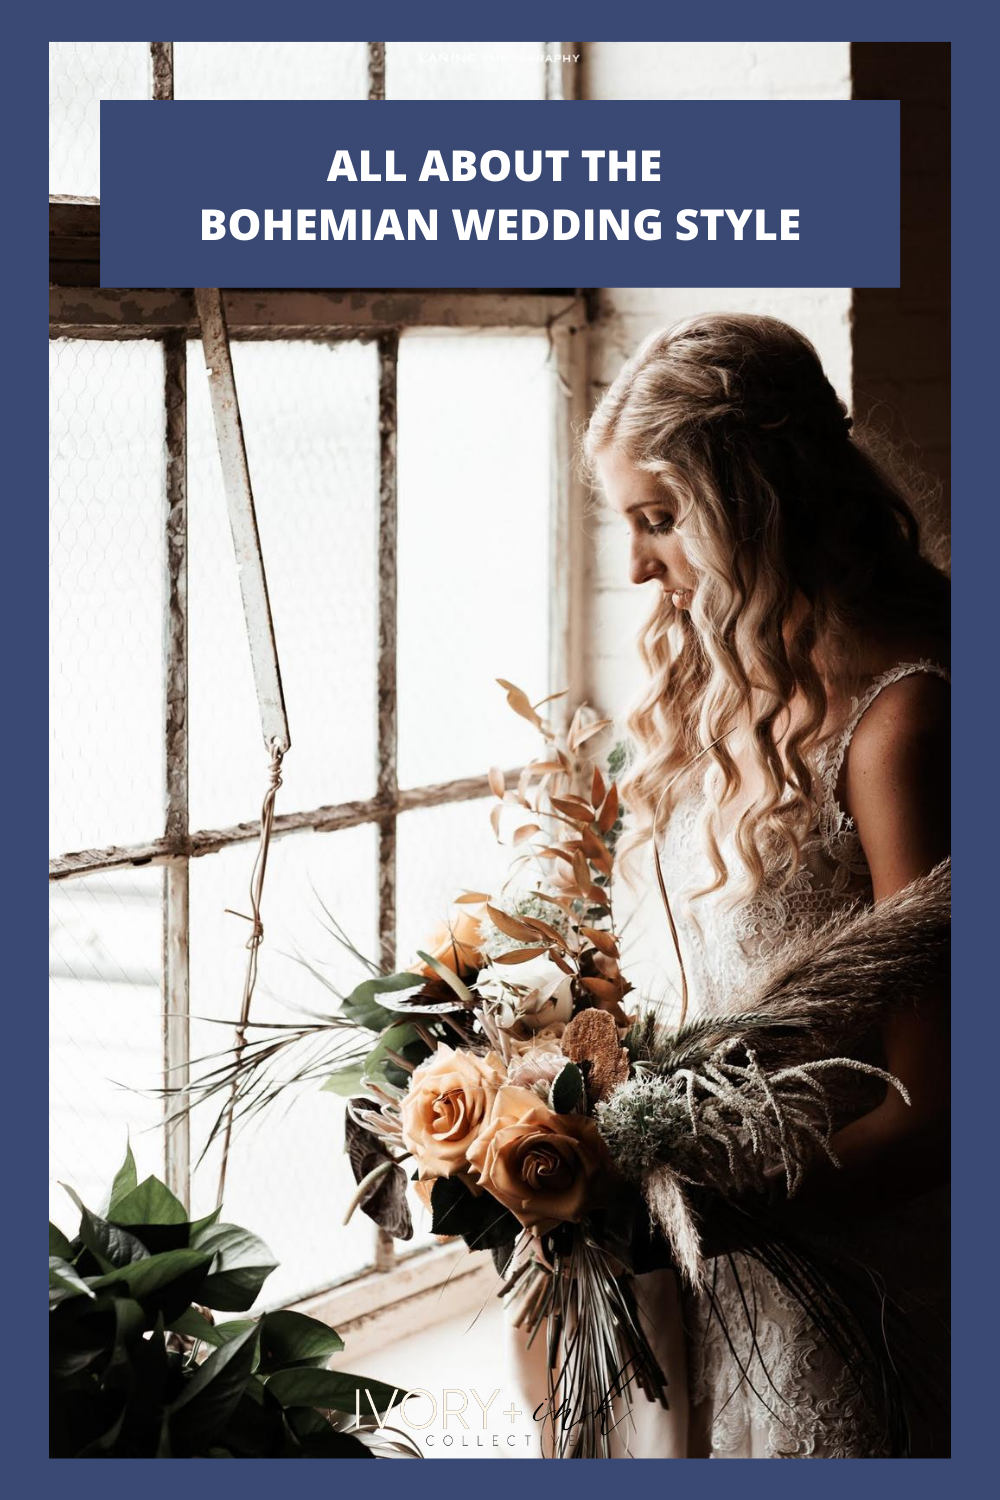 All About the Bohemian Wedding Style